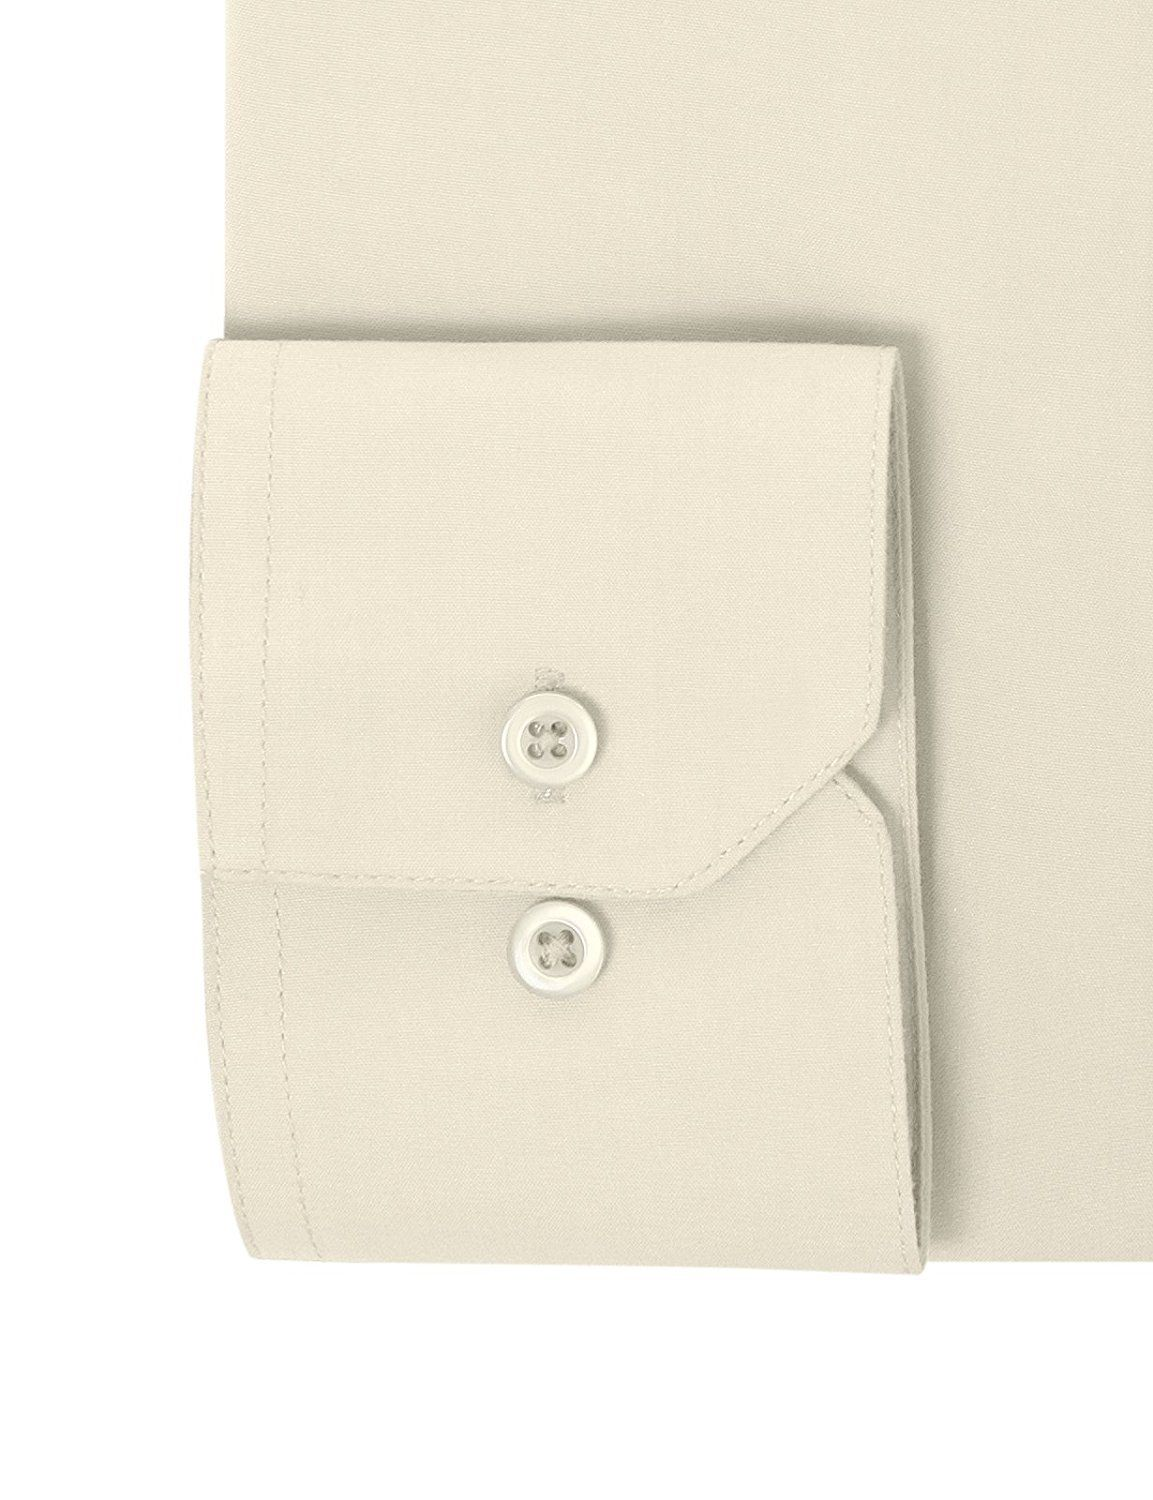 Berlioni Italy Men/'s Premium Classic French Convertible Cuff Solid Dress Shirt